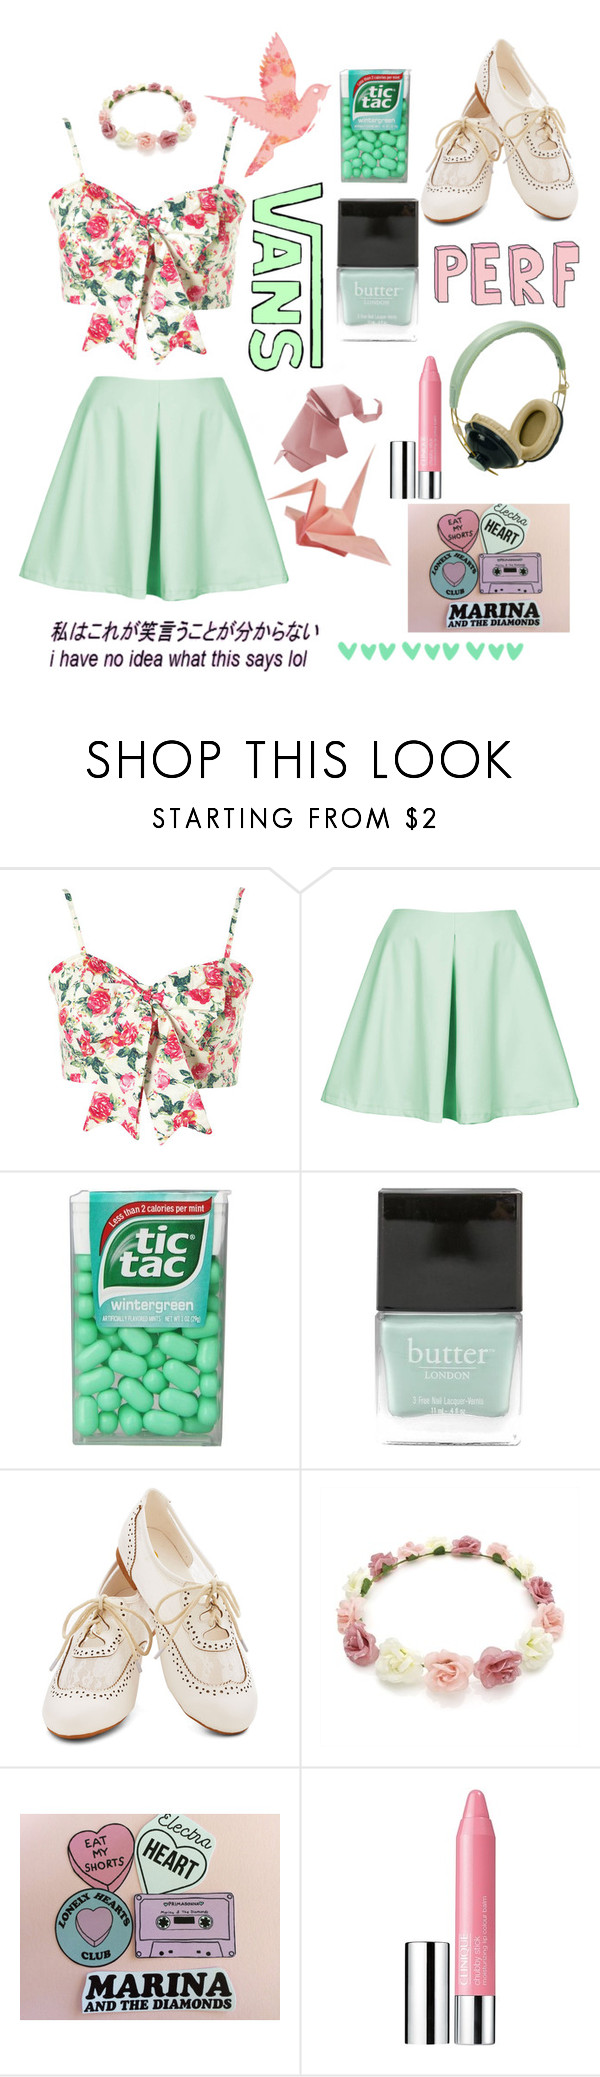 """Bow croptop green and pink"" by ginaisanerd ❤ liked on Polyvore featuring Oh My Love, Unis, American Eagle Outfitters, Butter London, Pull&Bear and Clinique"